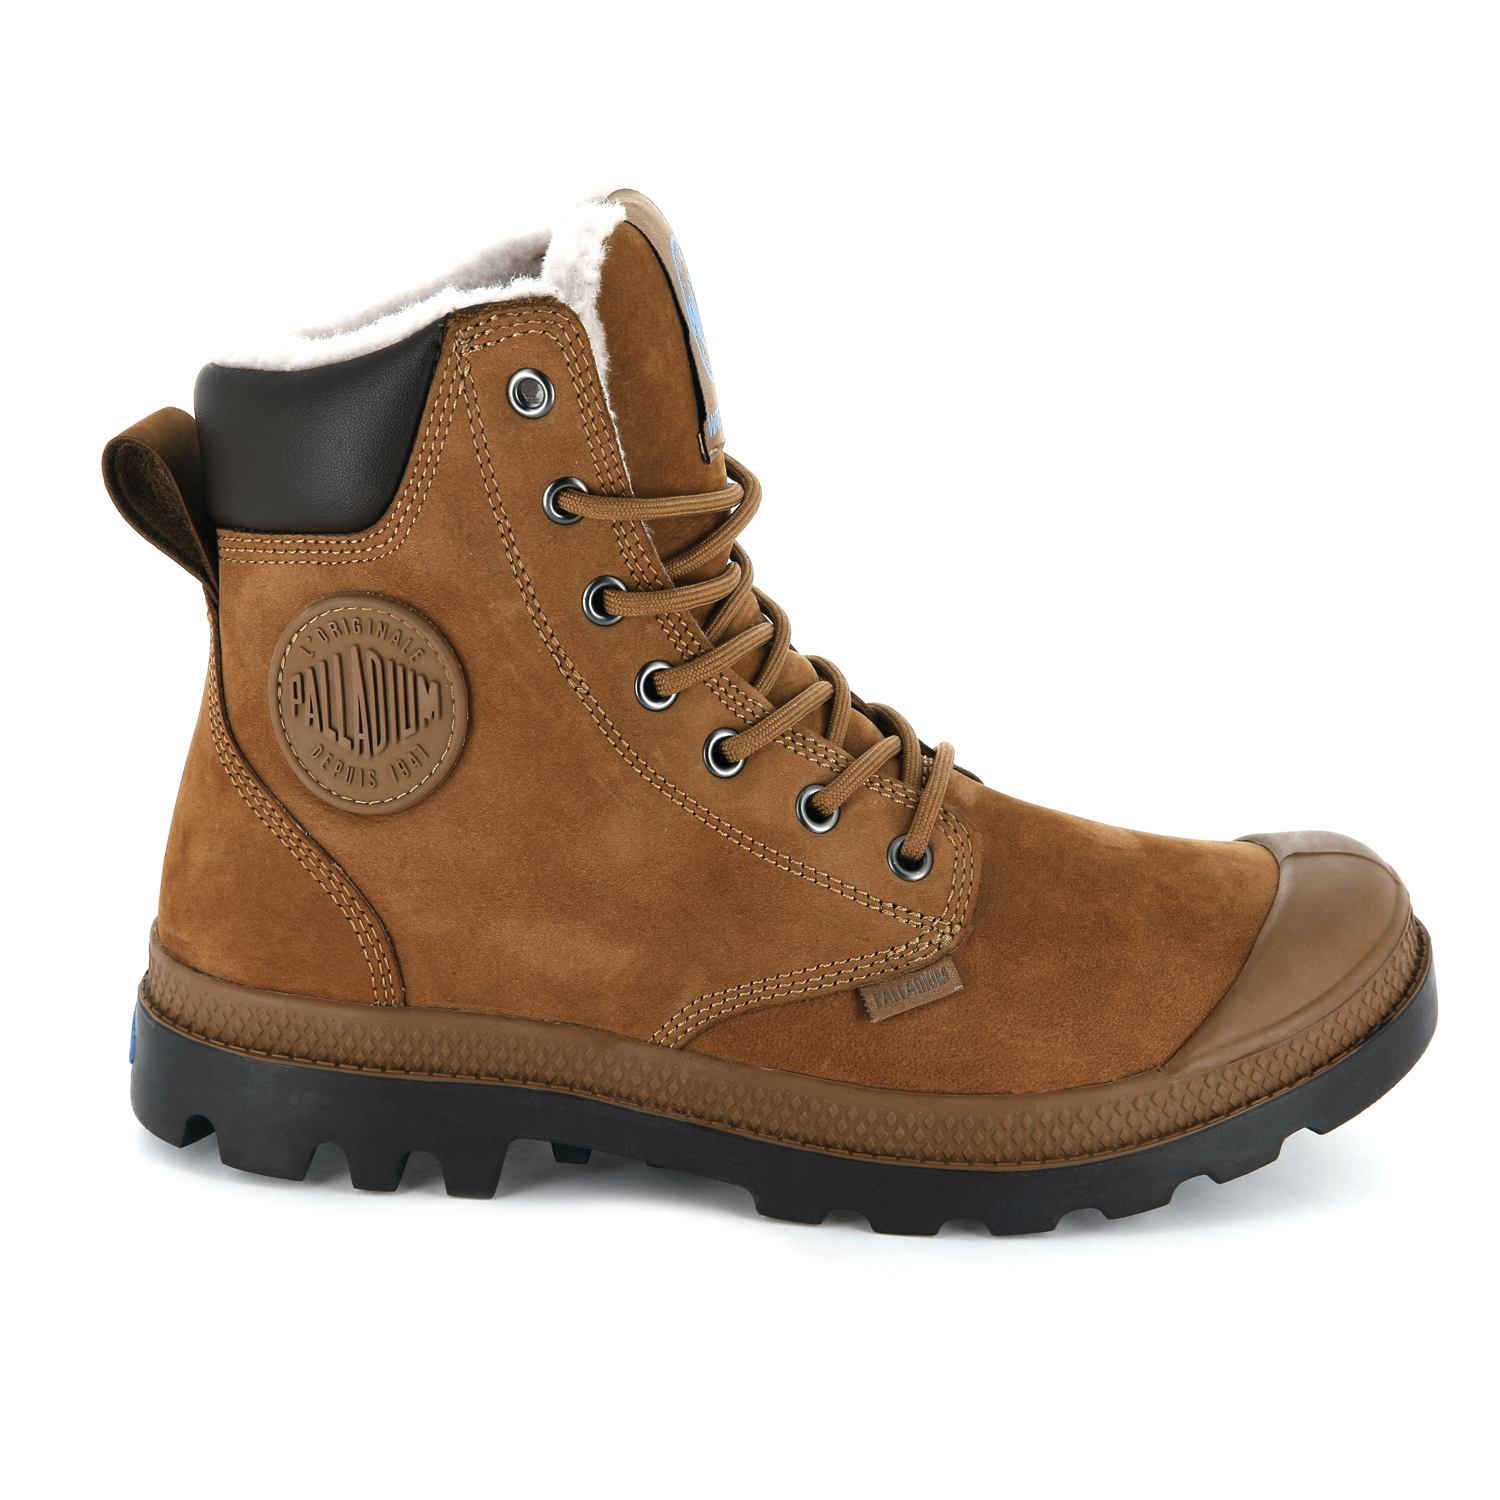 Palladium-Mens-Pampa-Sport-Cuff-Waterproof-Suede-Leather-Shoe-Wool-Lined-Boots thumbnail 22